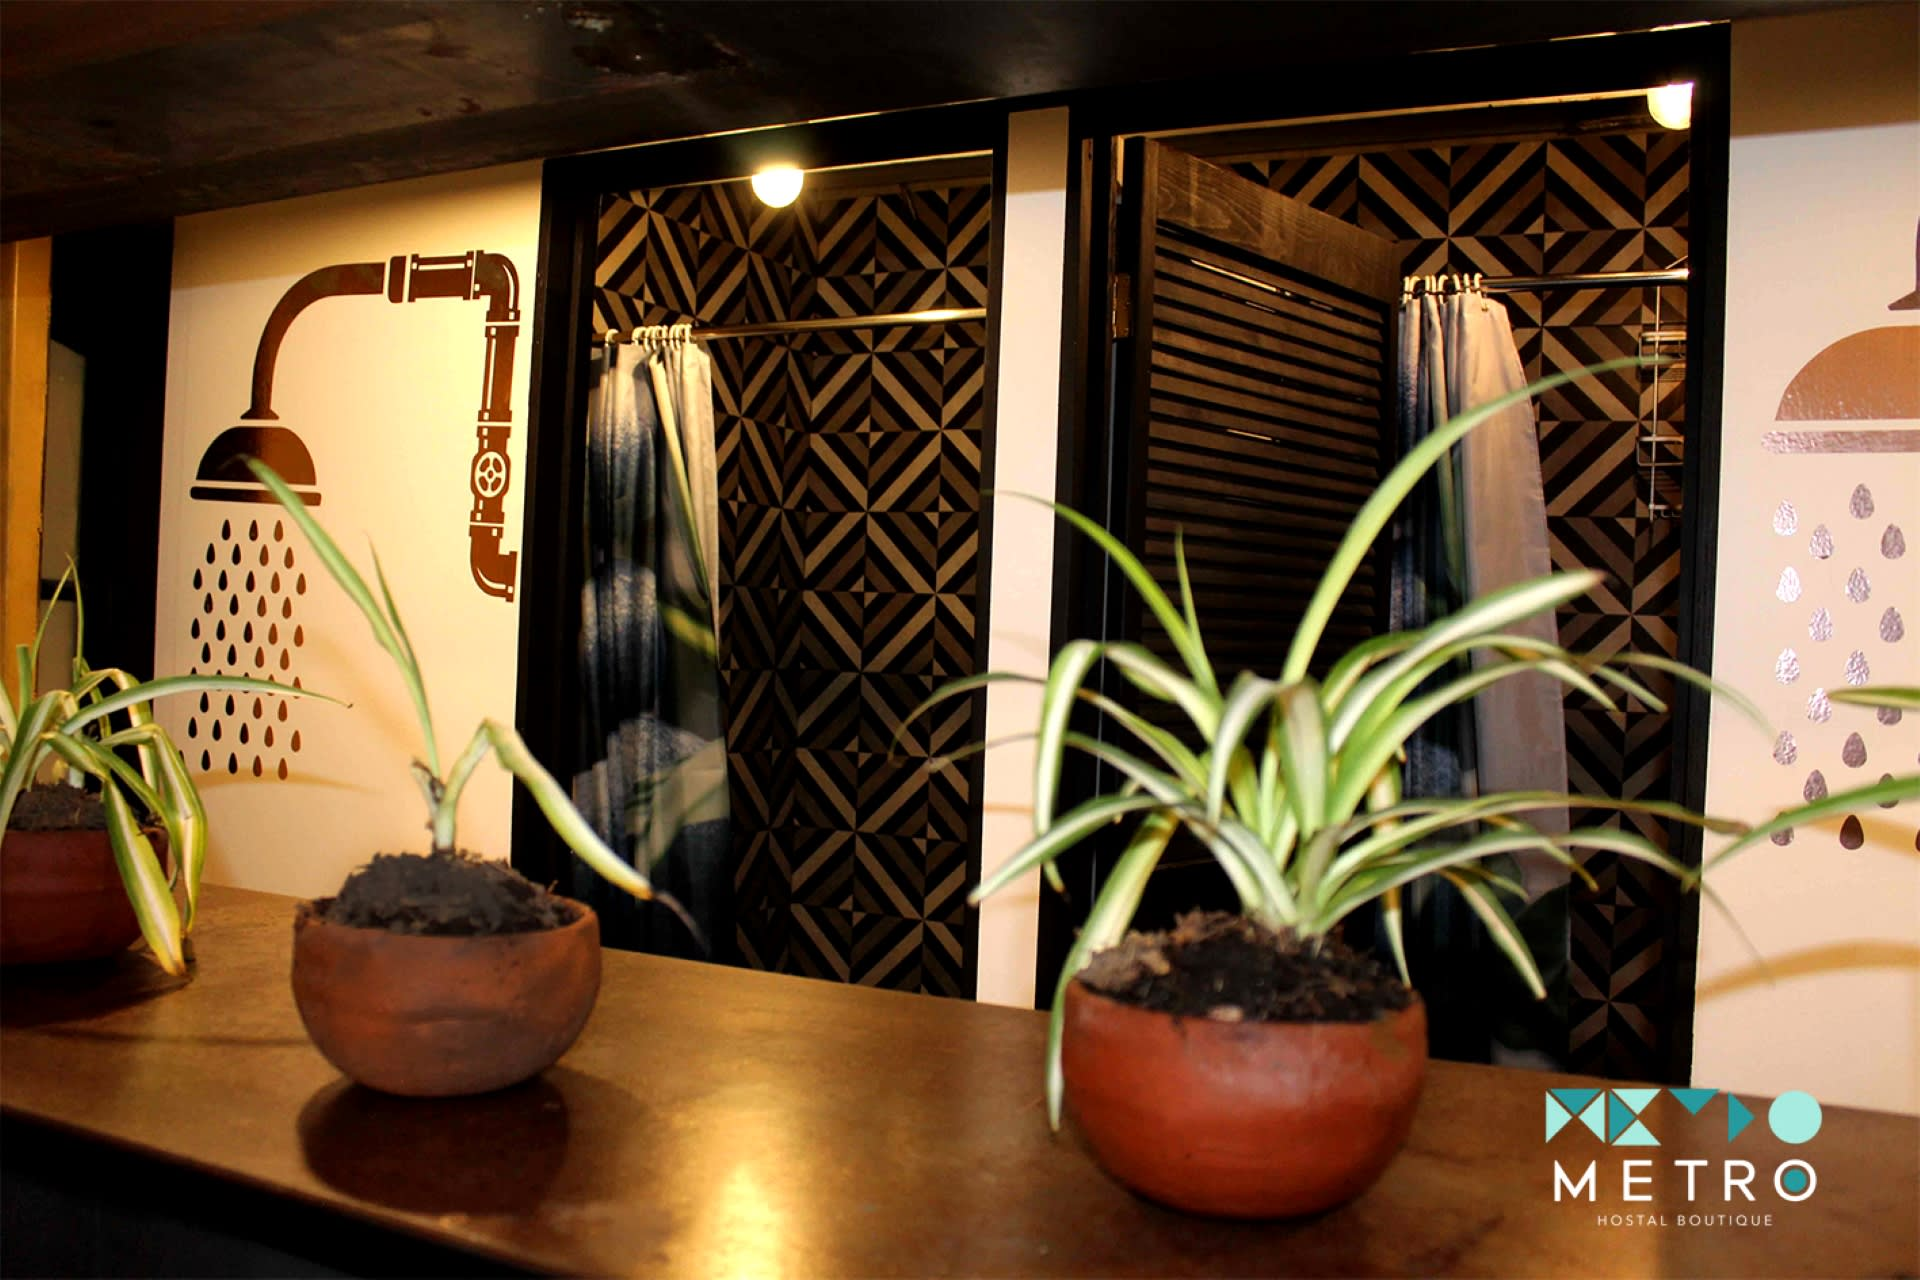 HOSTEL - Metro Hostal Boutique